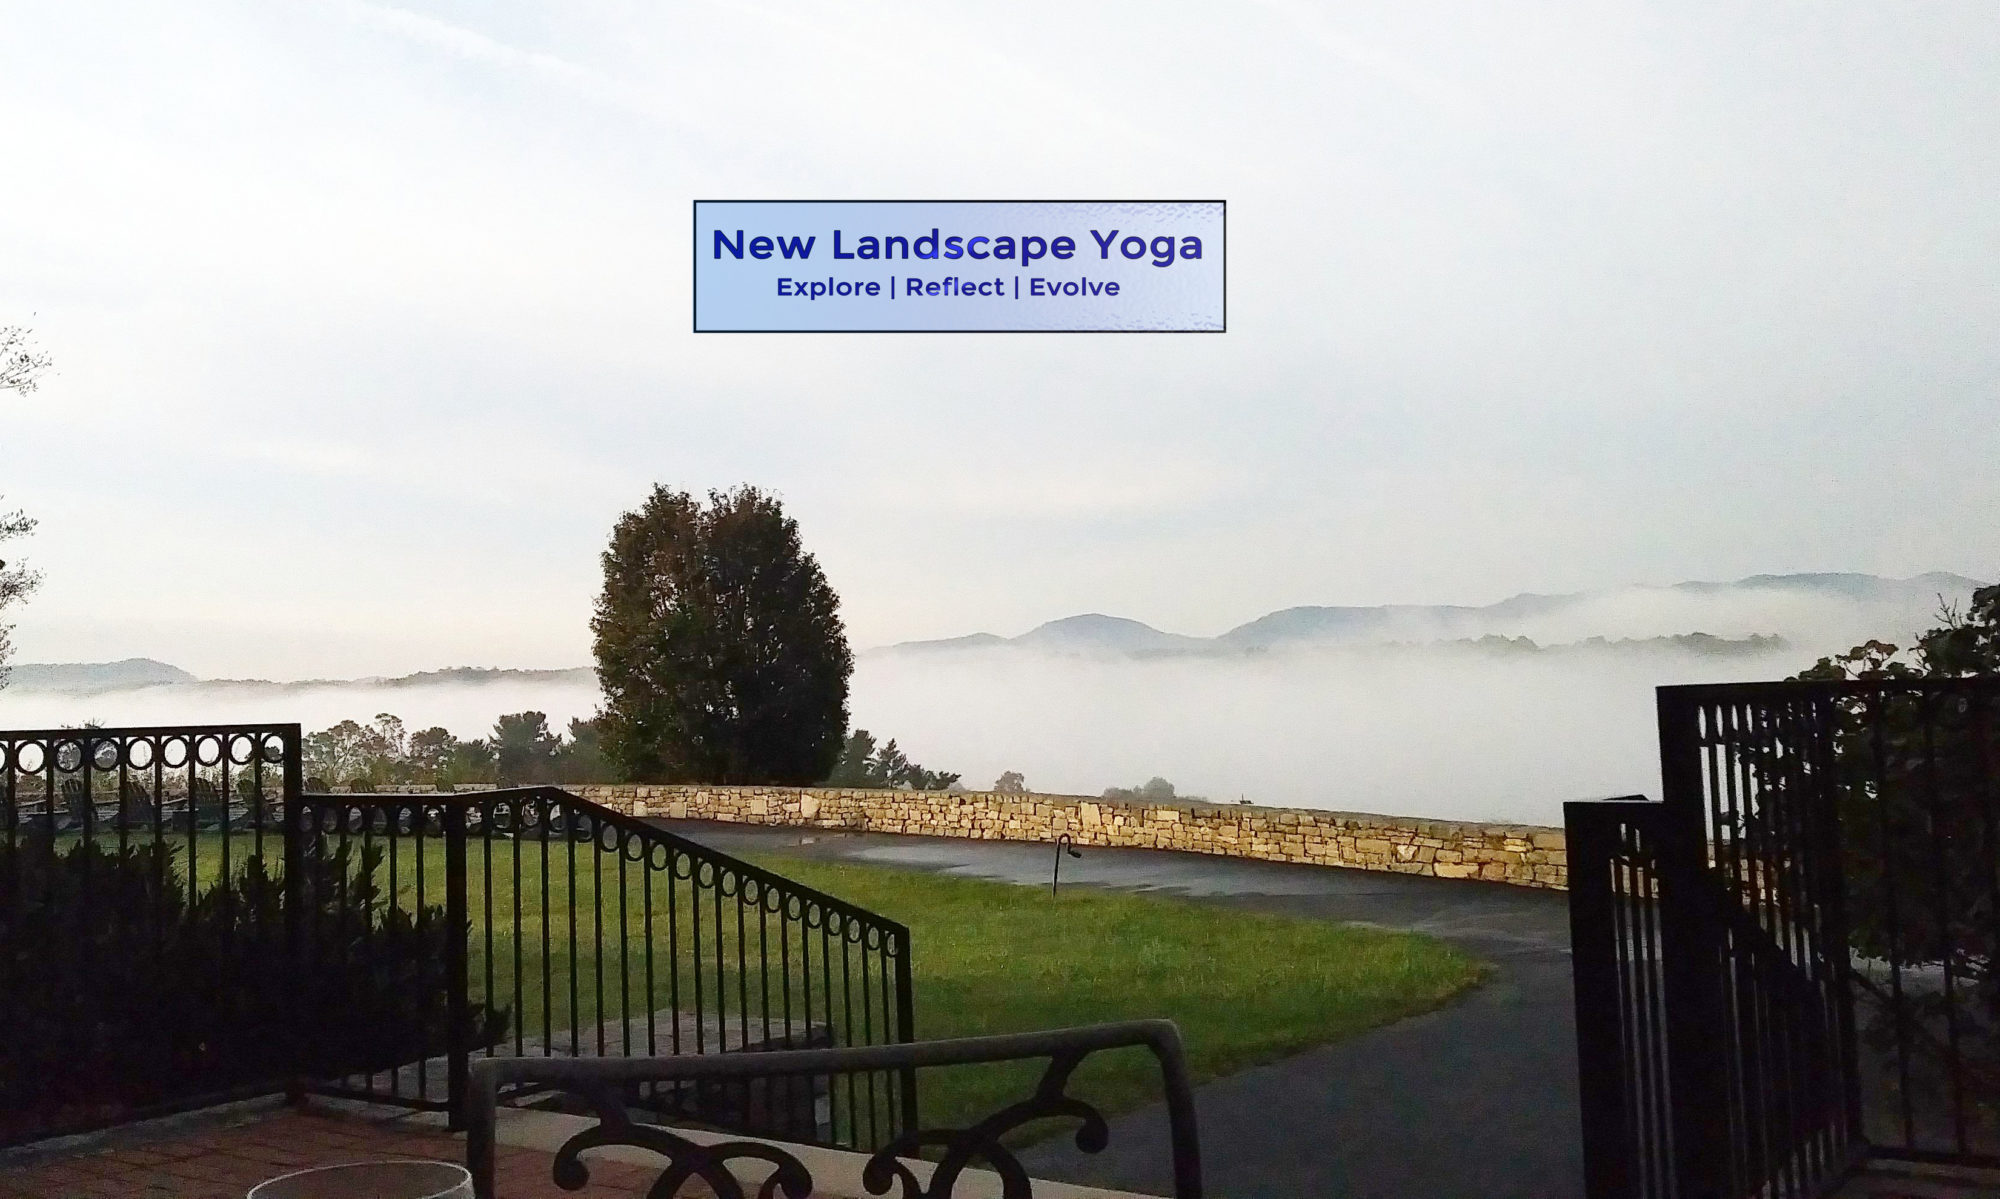 New Landscape Yoga